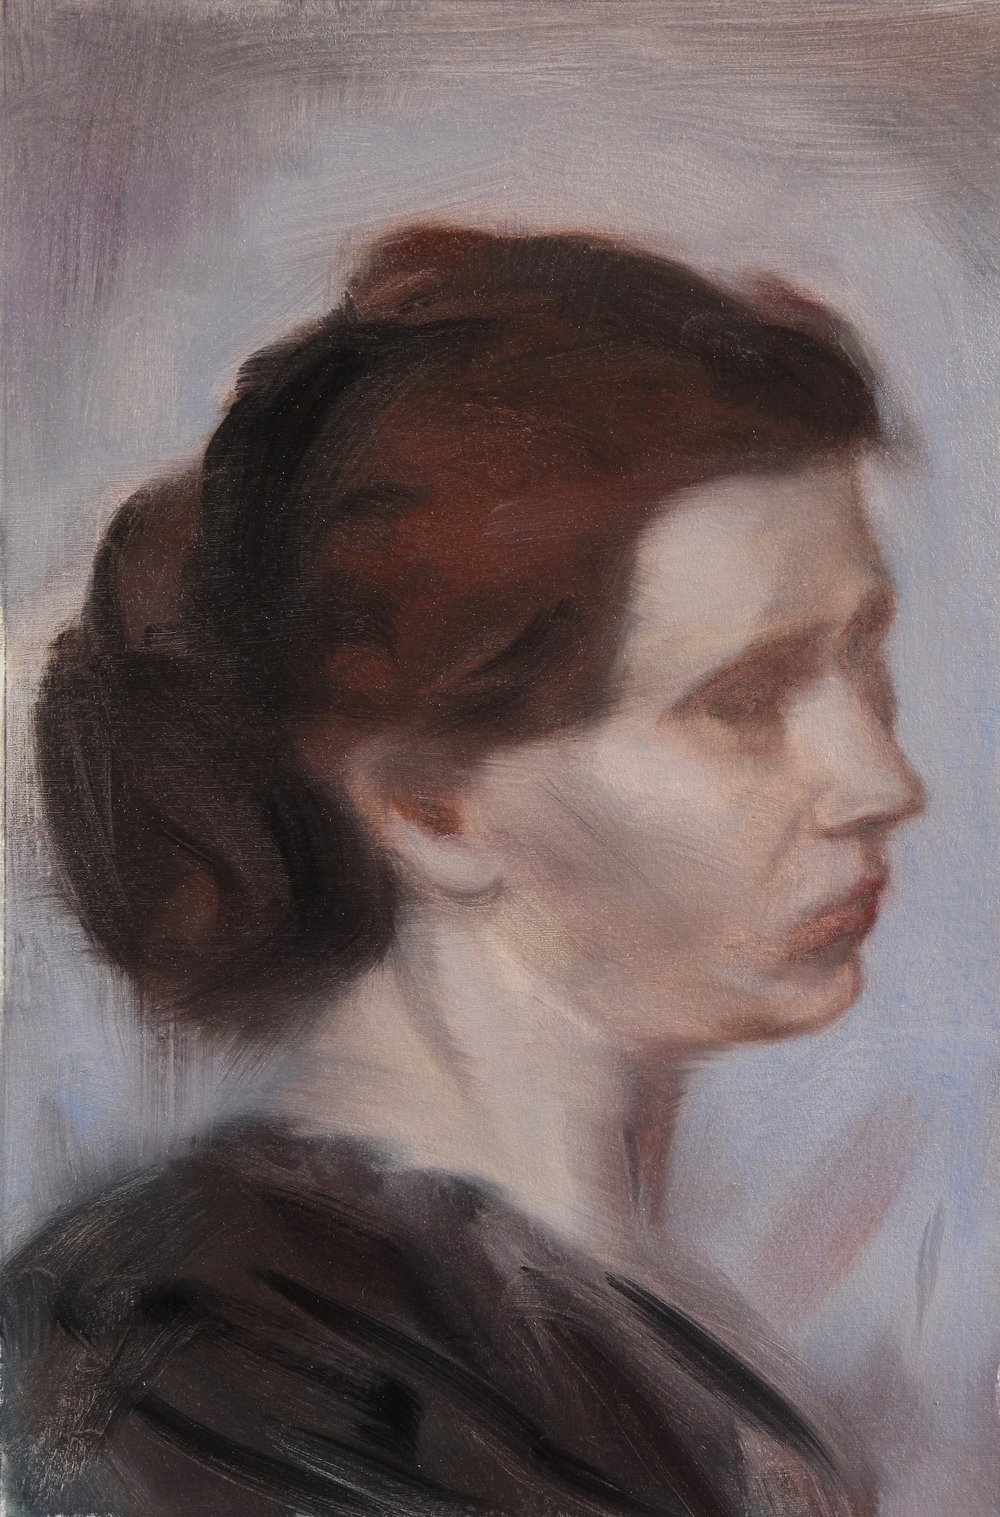 Head of a Woman (after Degas), Oil on paper, 29x19cm, 2017